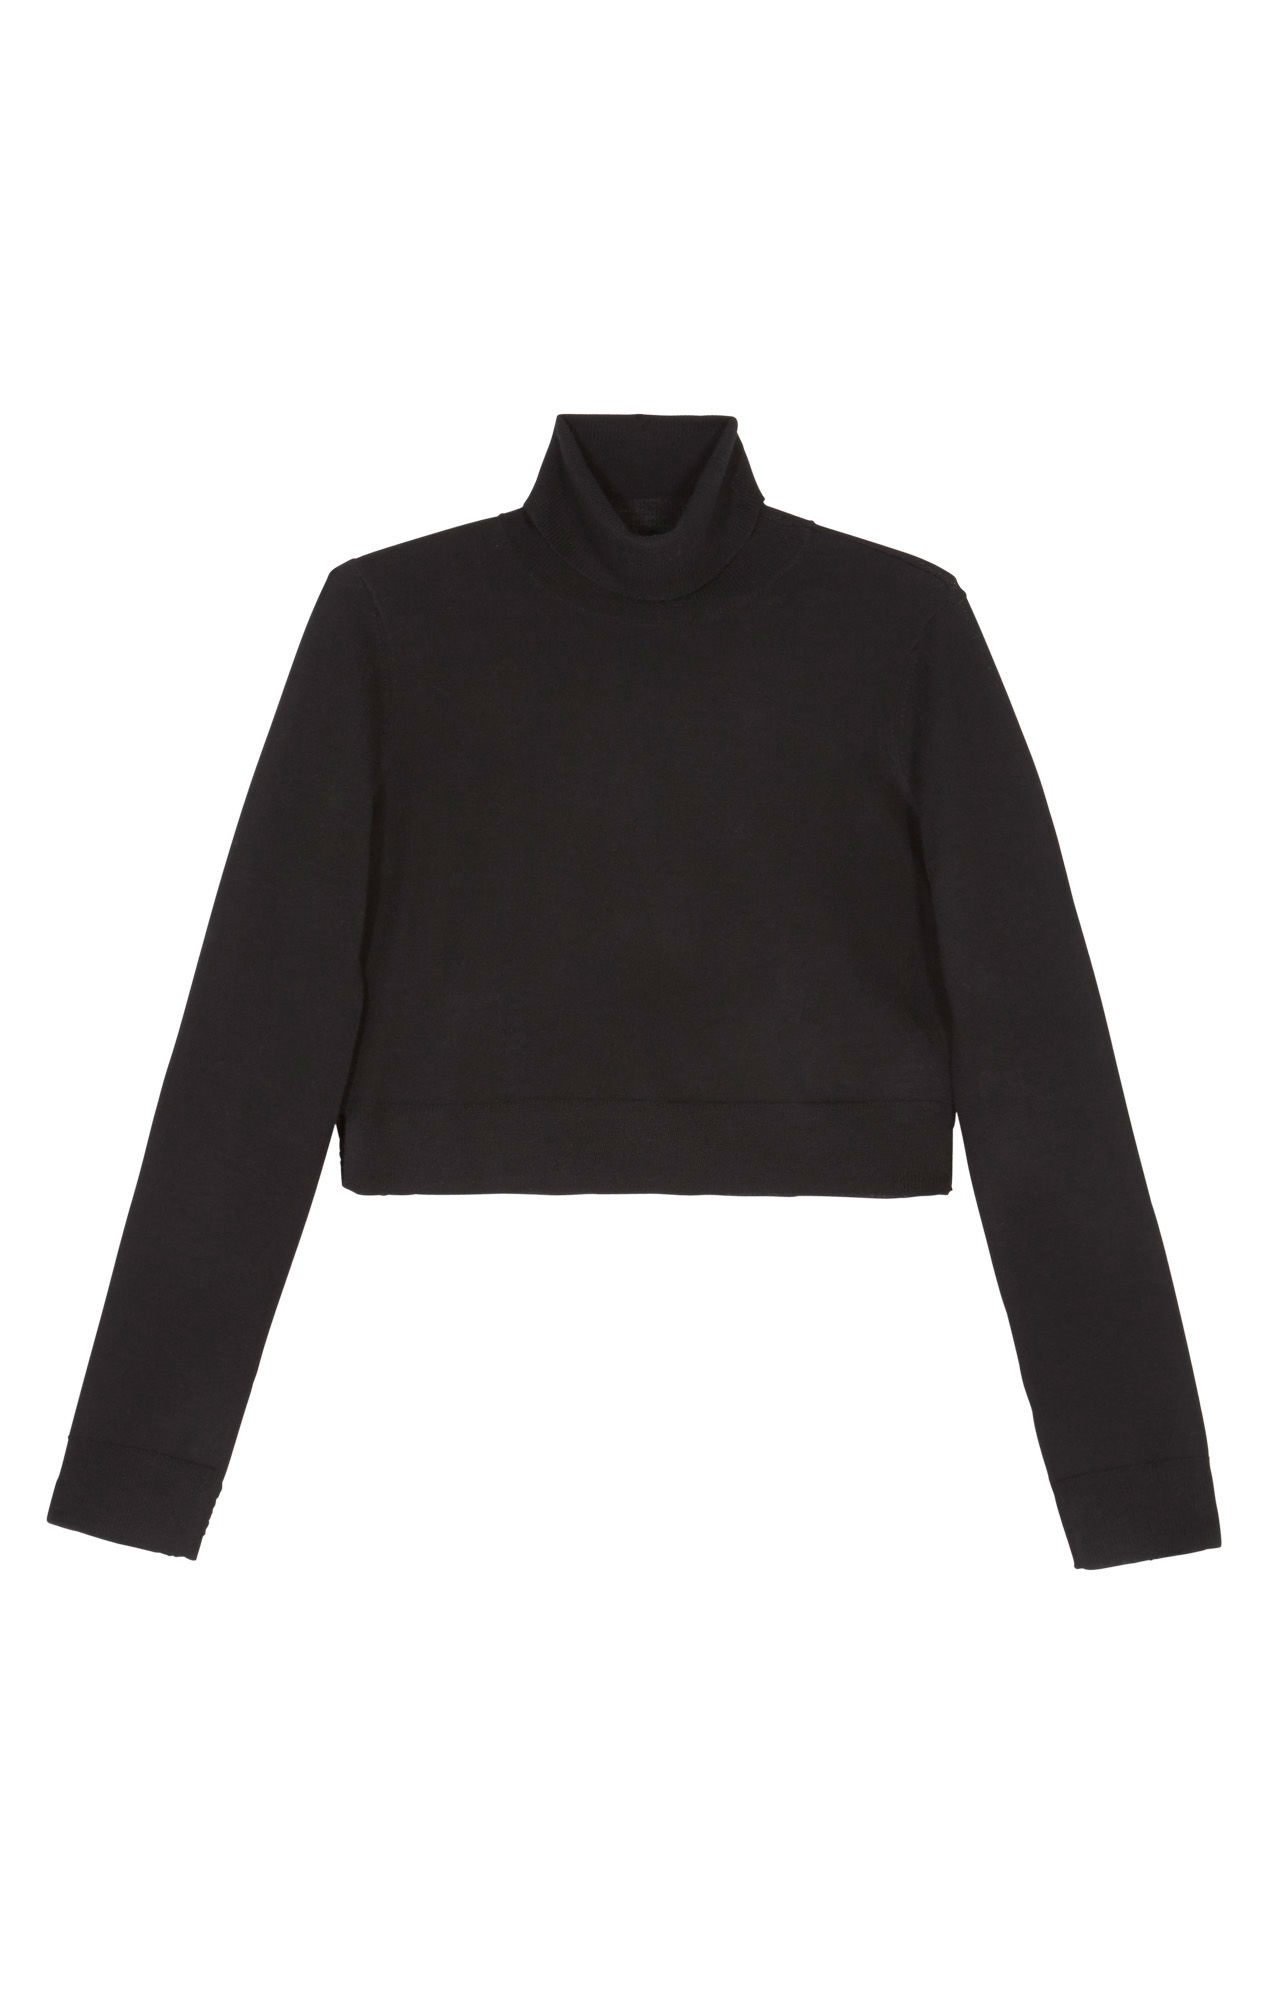 Bcbgmaxazria Natassia Cropped Turtleneck Wool Sweater in Black | Lyst